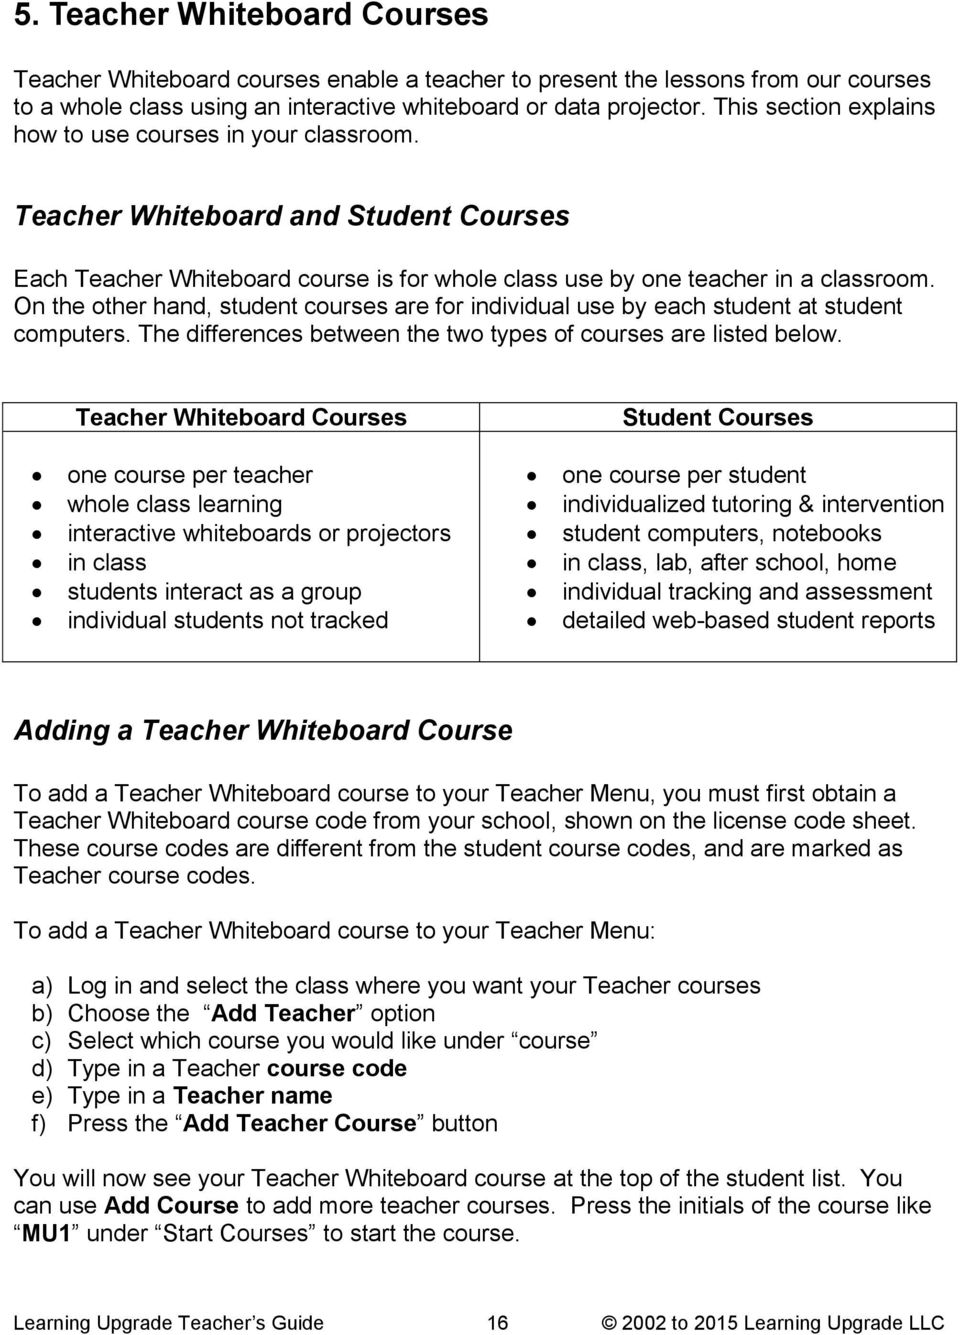 On the other hand, student courses are for individual use by each student at student computers. The differences between the two types of courses are listed below.